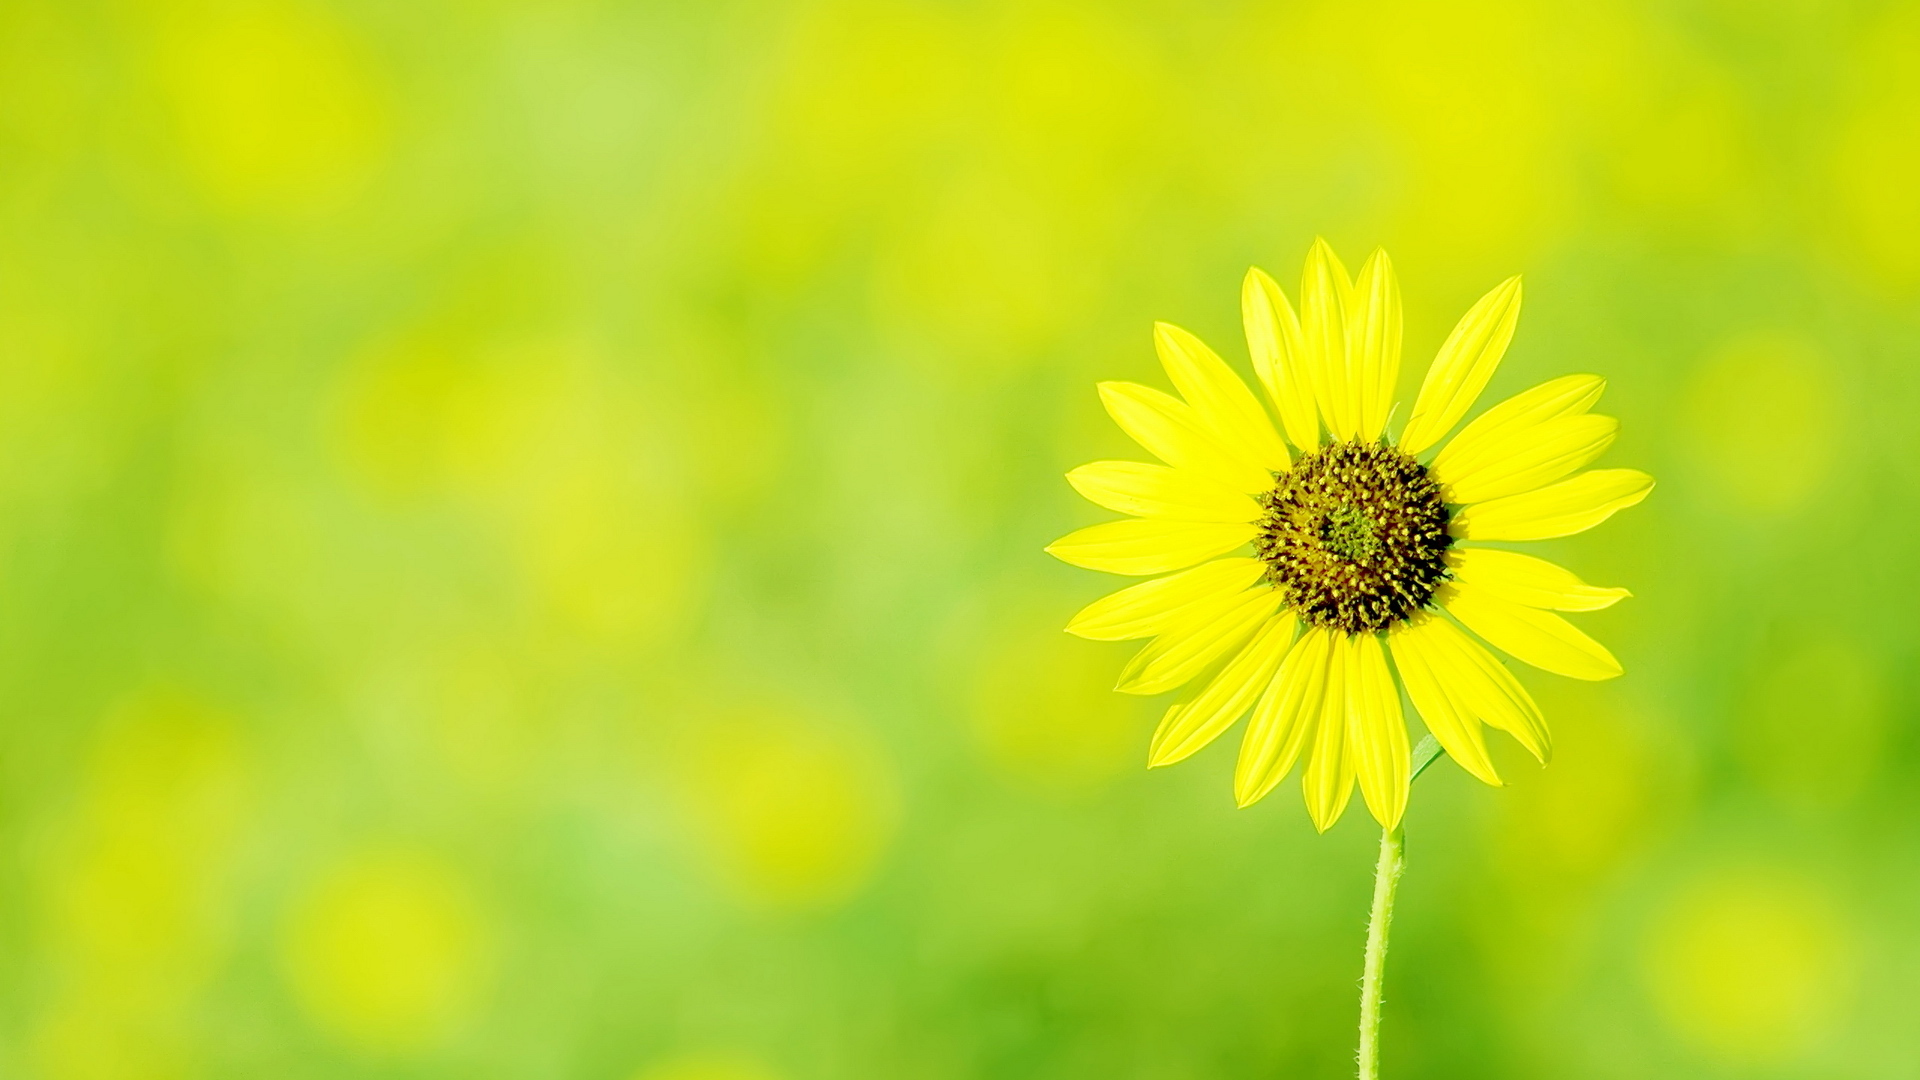 background, wallpapers, chamomile, yellow, green, wallpaper, flowers